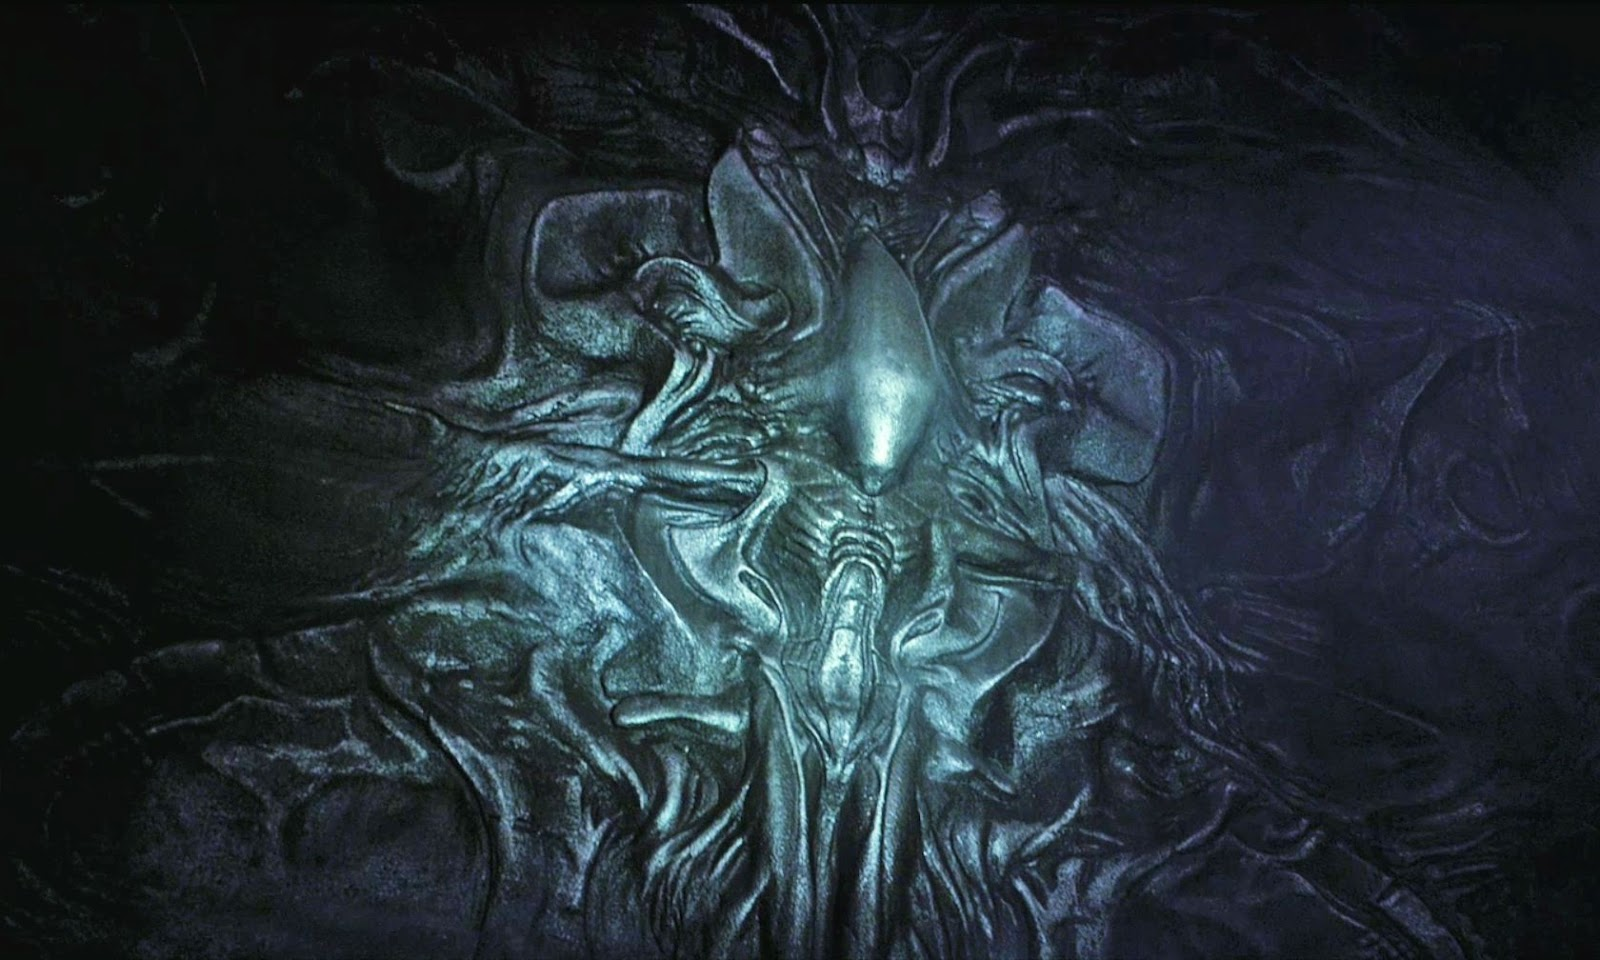 Mural in the engineer base on lv-223, suggesting that the xenomorphs